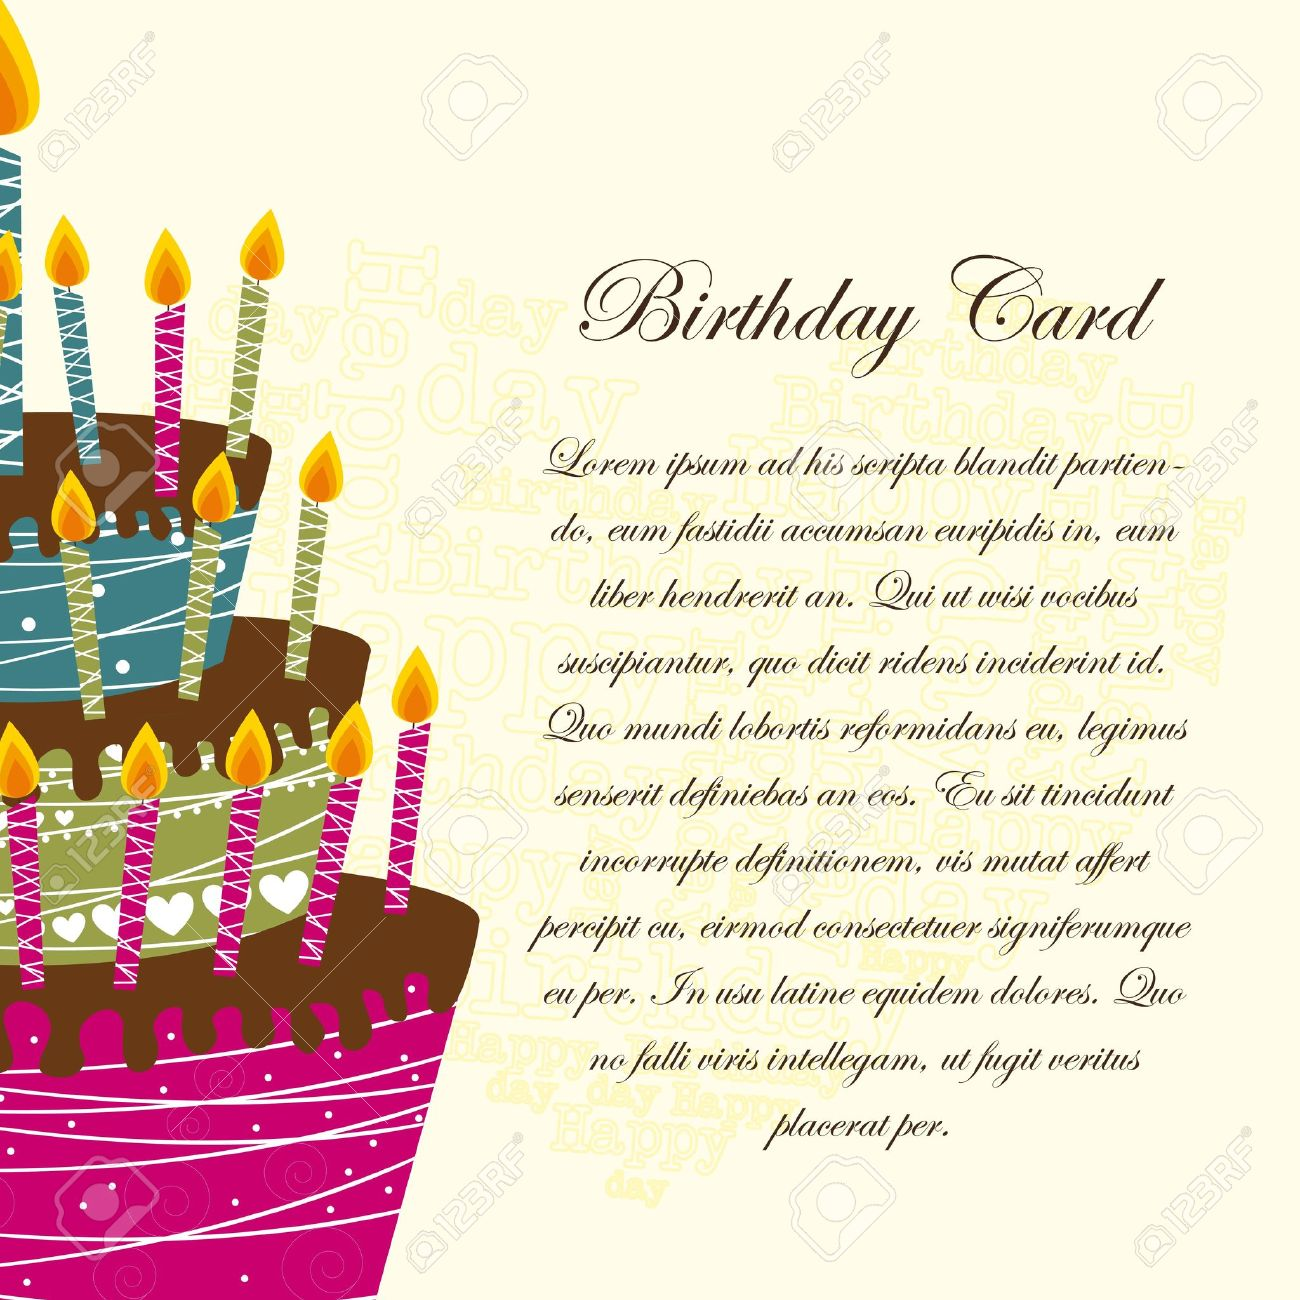 birthday greeting card background design ; 12459227-birthday-card-with-cake-over-beige-background-